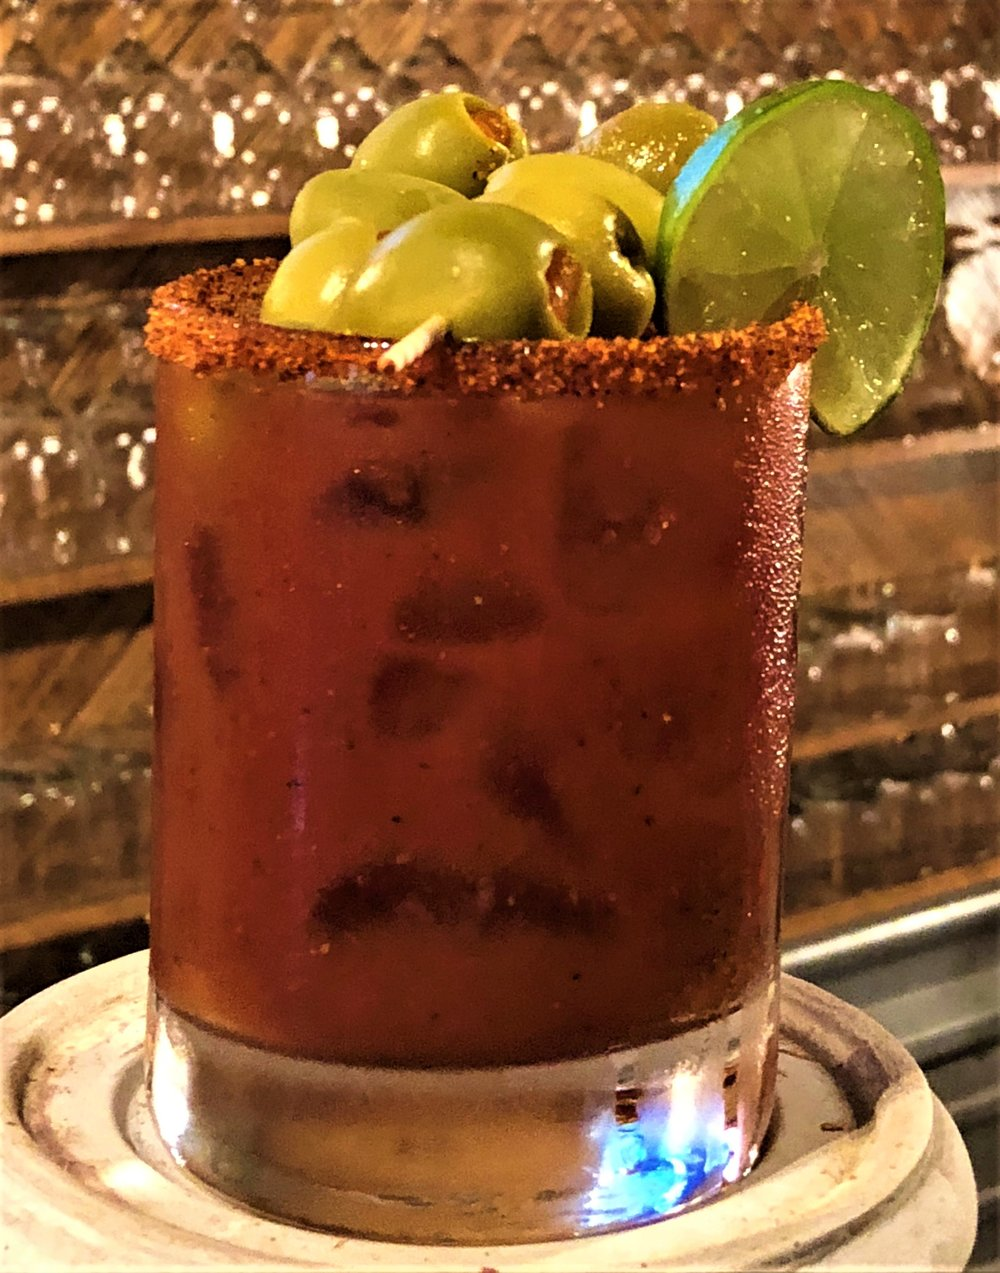 The Wild Armadillo Bloody Mary  - In a shaker, add 1 or 2 shots WILD RAG VODKA or WILD RAG MESQUITE BEAN VODKA, 3/4 Zing Zang Bloody Mary Mix, squeeze of lime, dash of Tabasco, Worcesterhire sauce, celery salt, pepper, & shake. Rim glass with Spicy Salted Trechas. Pour ingredients over ice. Garnish with olives.